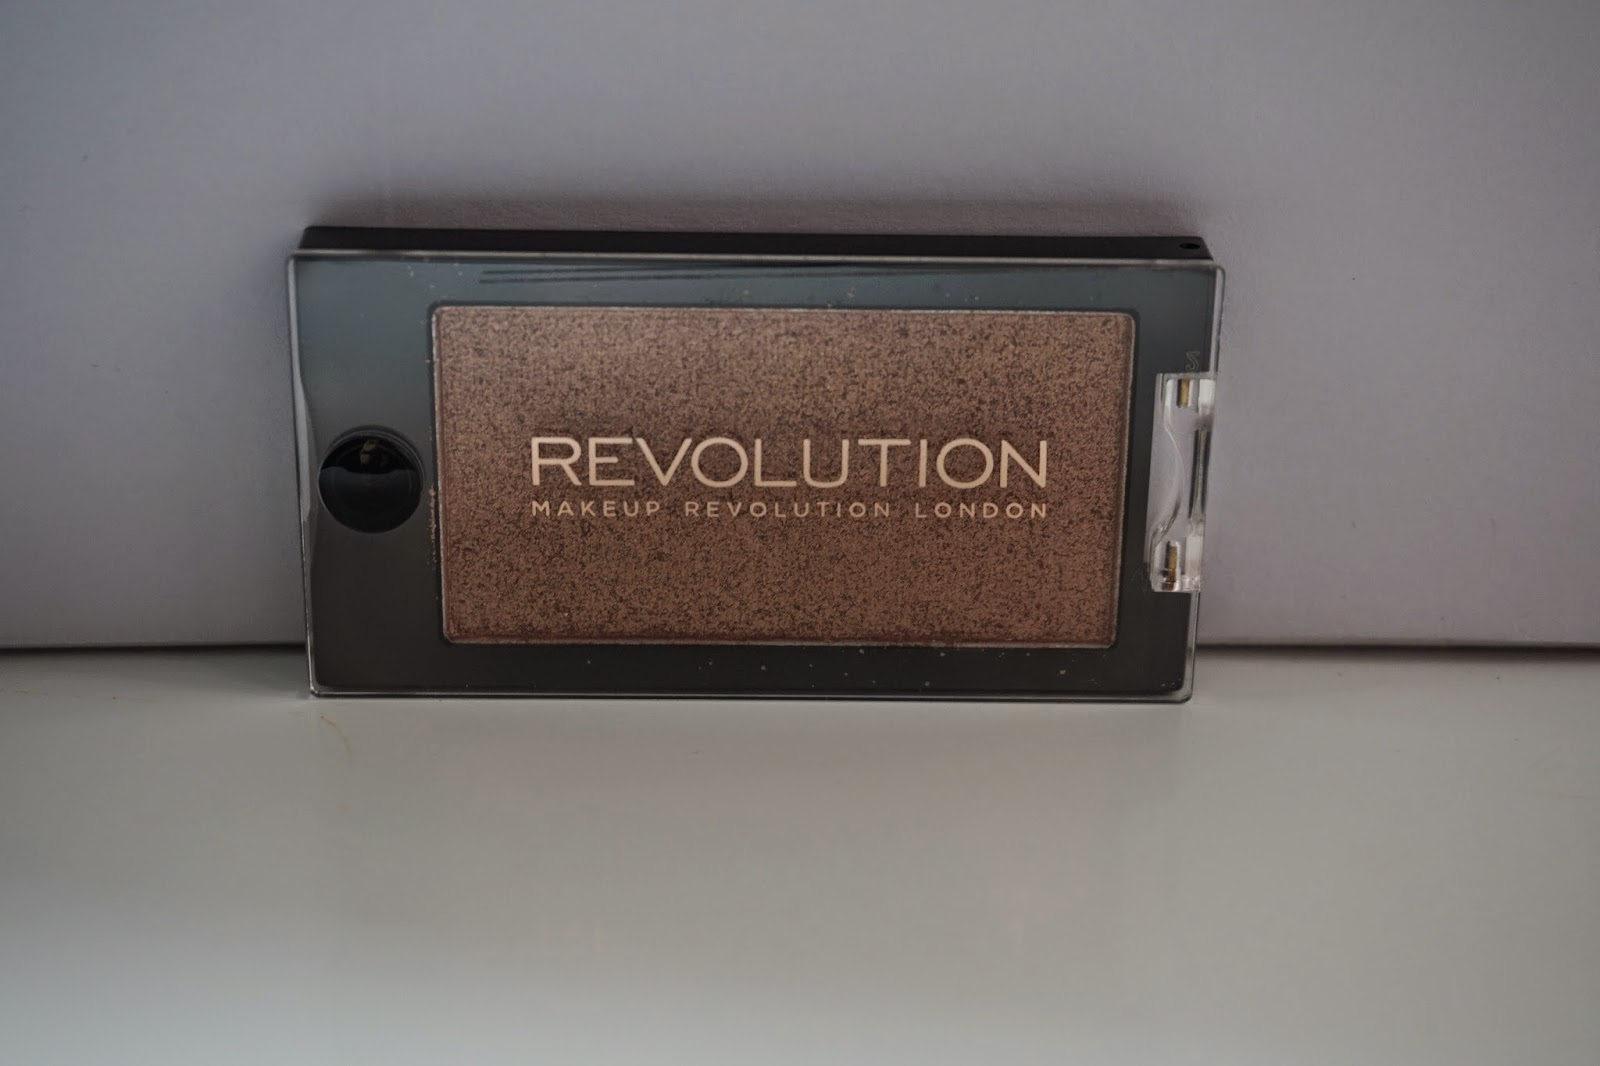 Makeup Revolution The Promised Land Collection Mountains of Gold - Dusty Foxes Beauty Blog